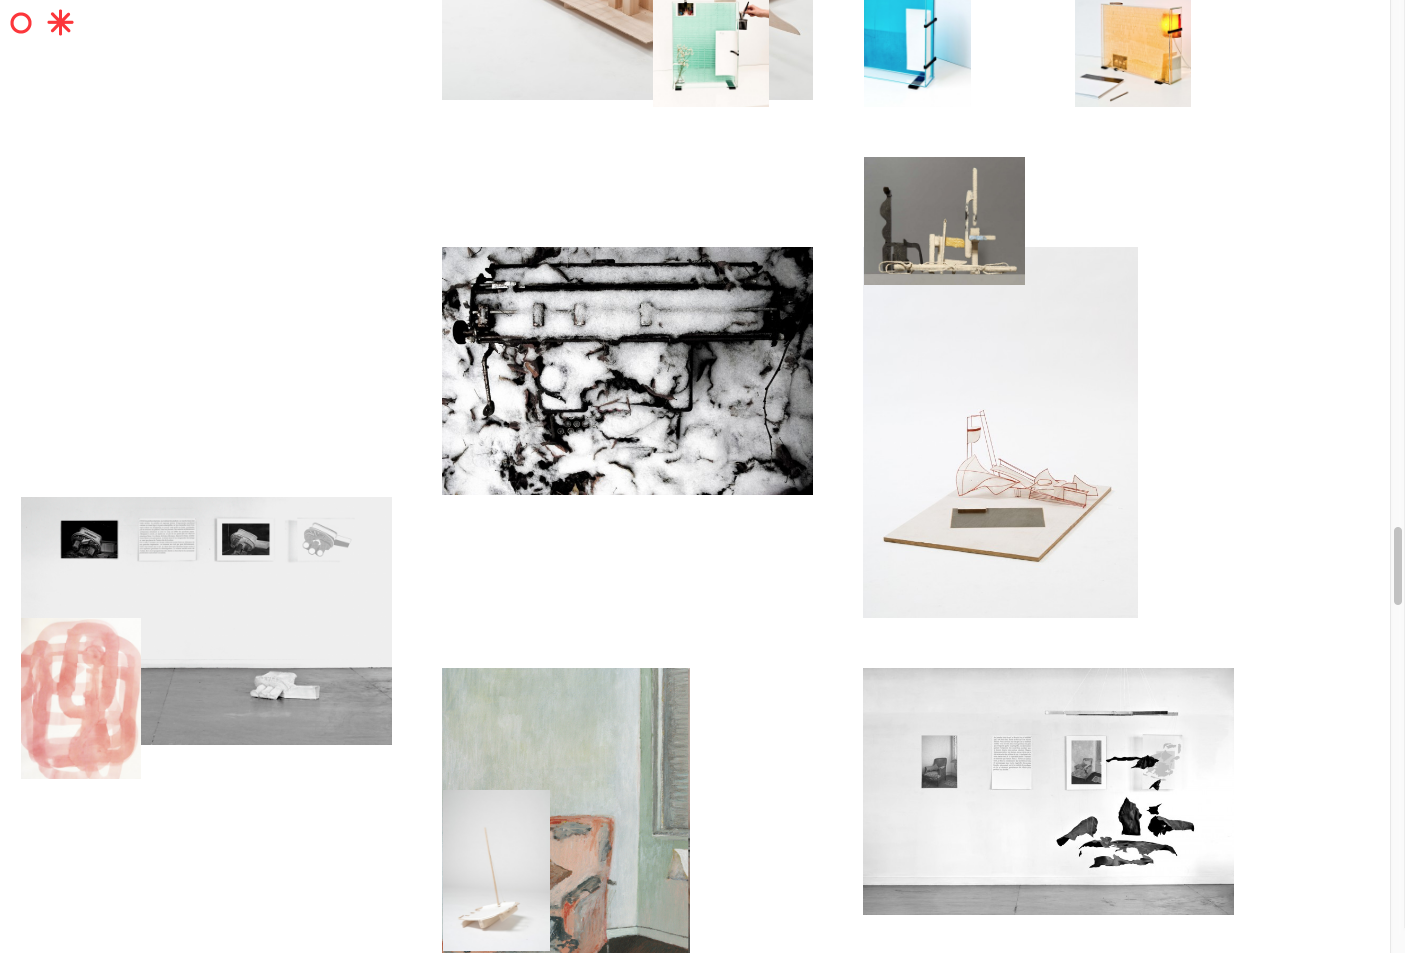 Alexandre Willaume's website — Lisa Sturacci Graphiste